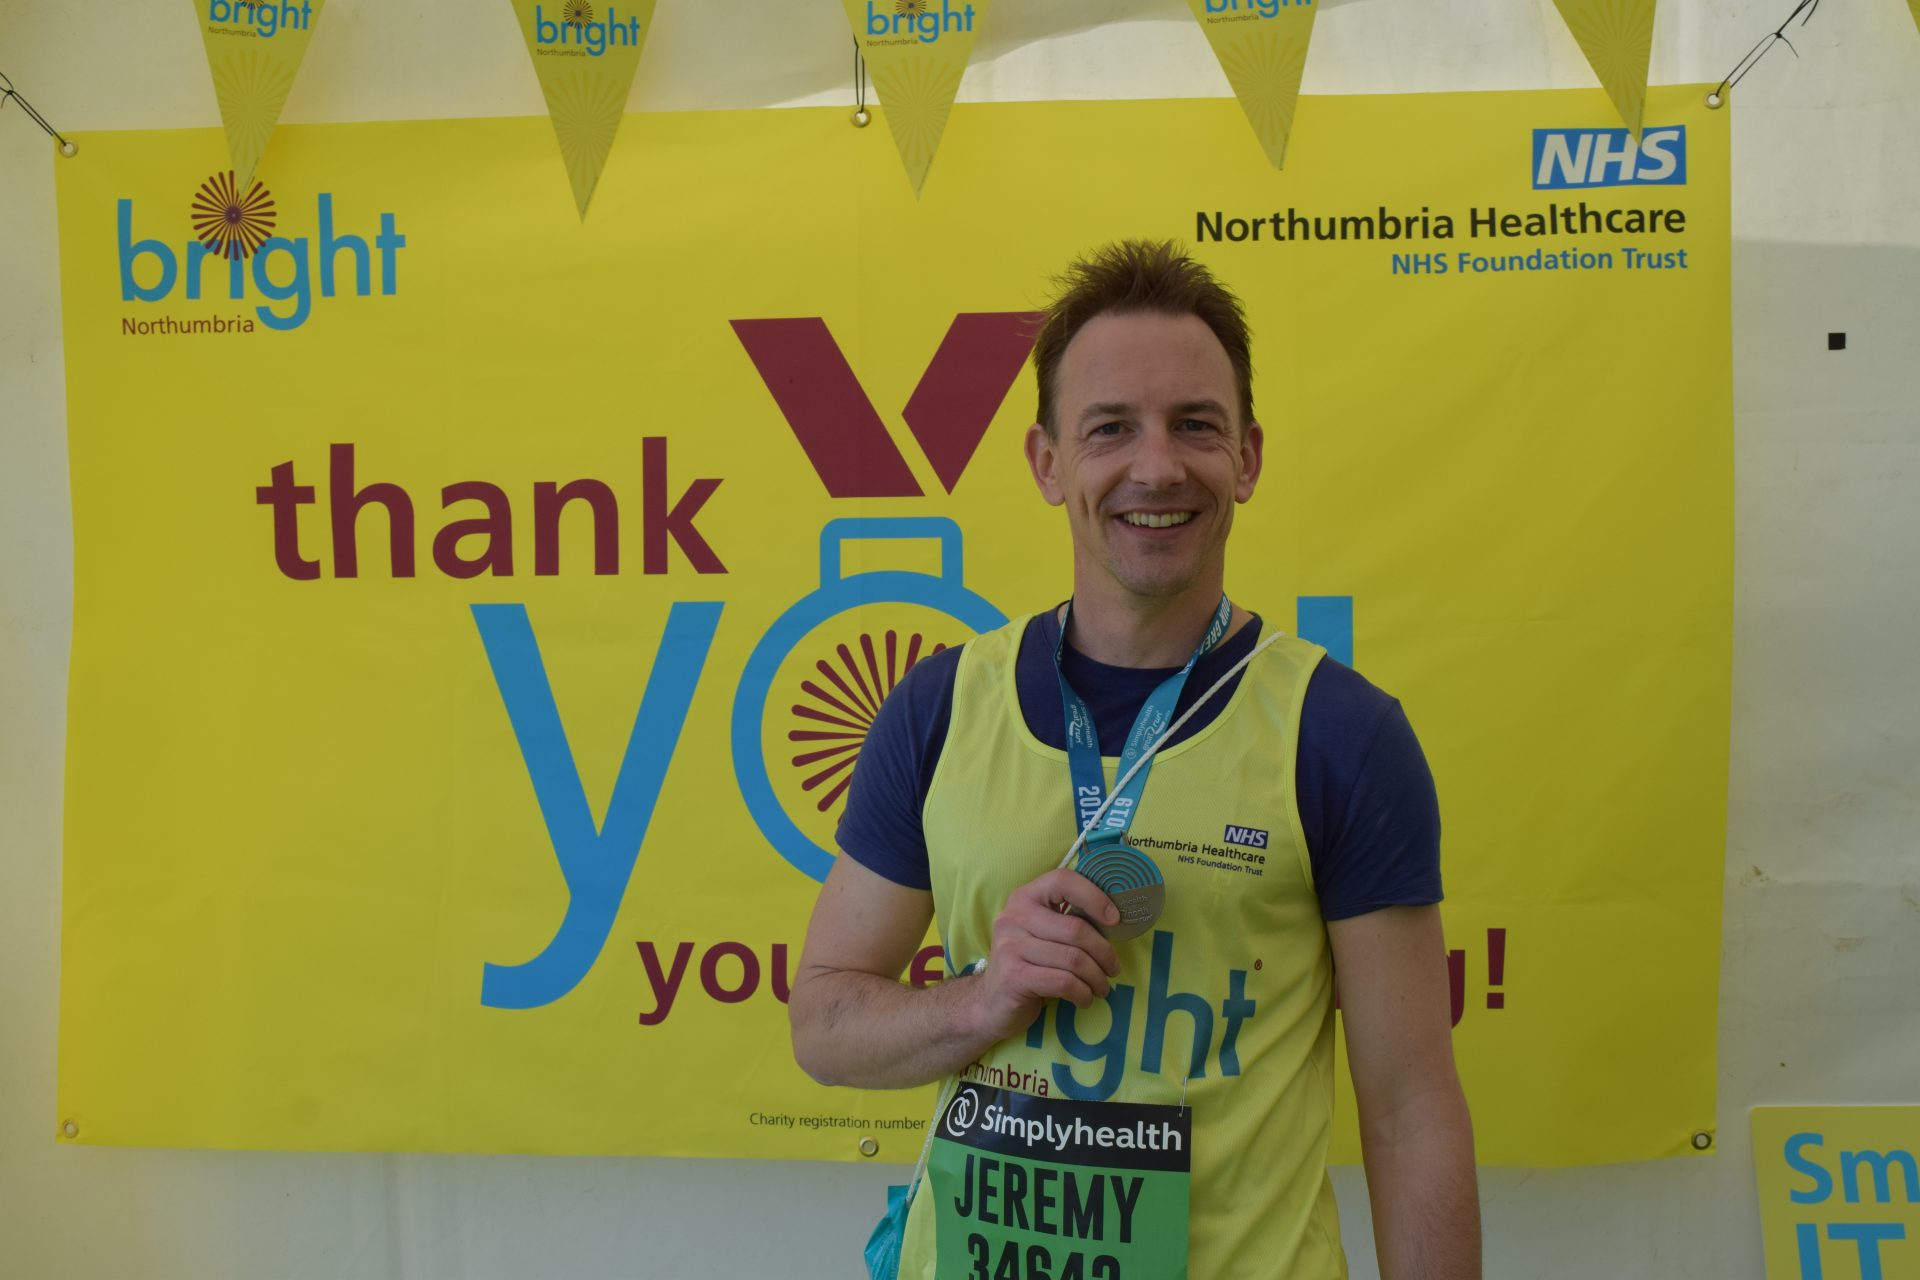 GNR 2019 All the way from Australia - well done Jeremy!